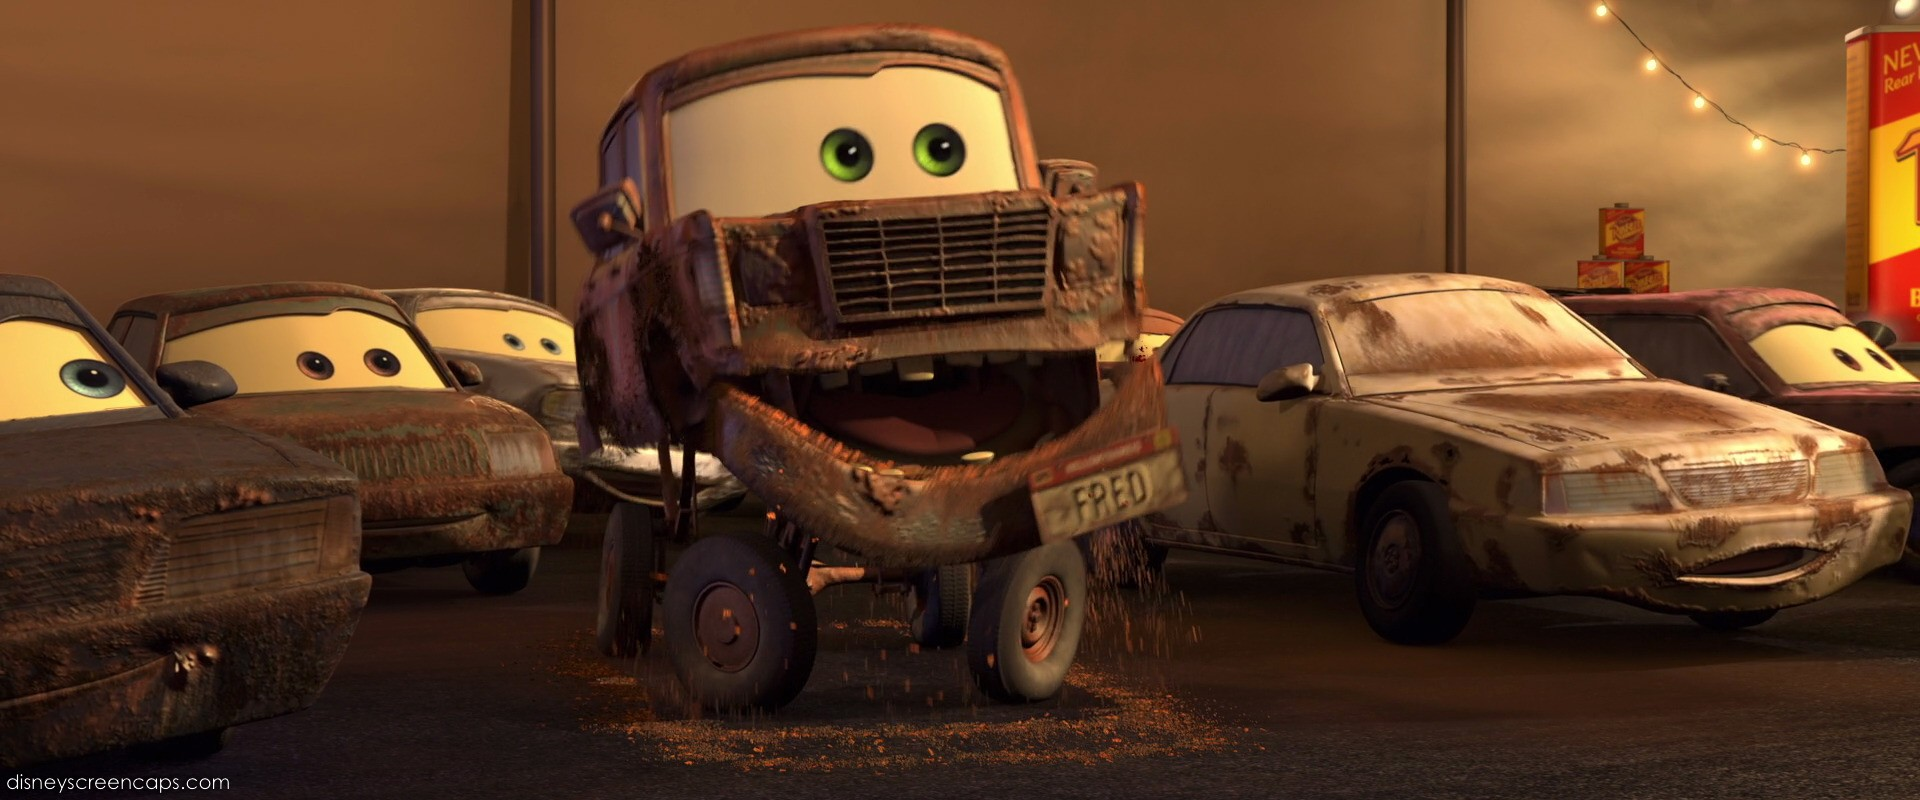 Fred from Disney's Cars